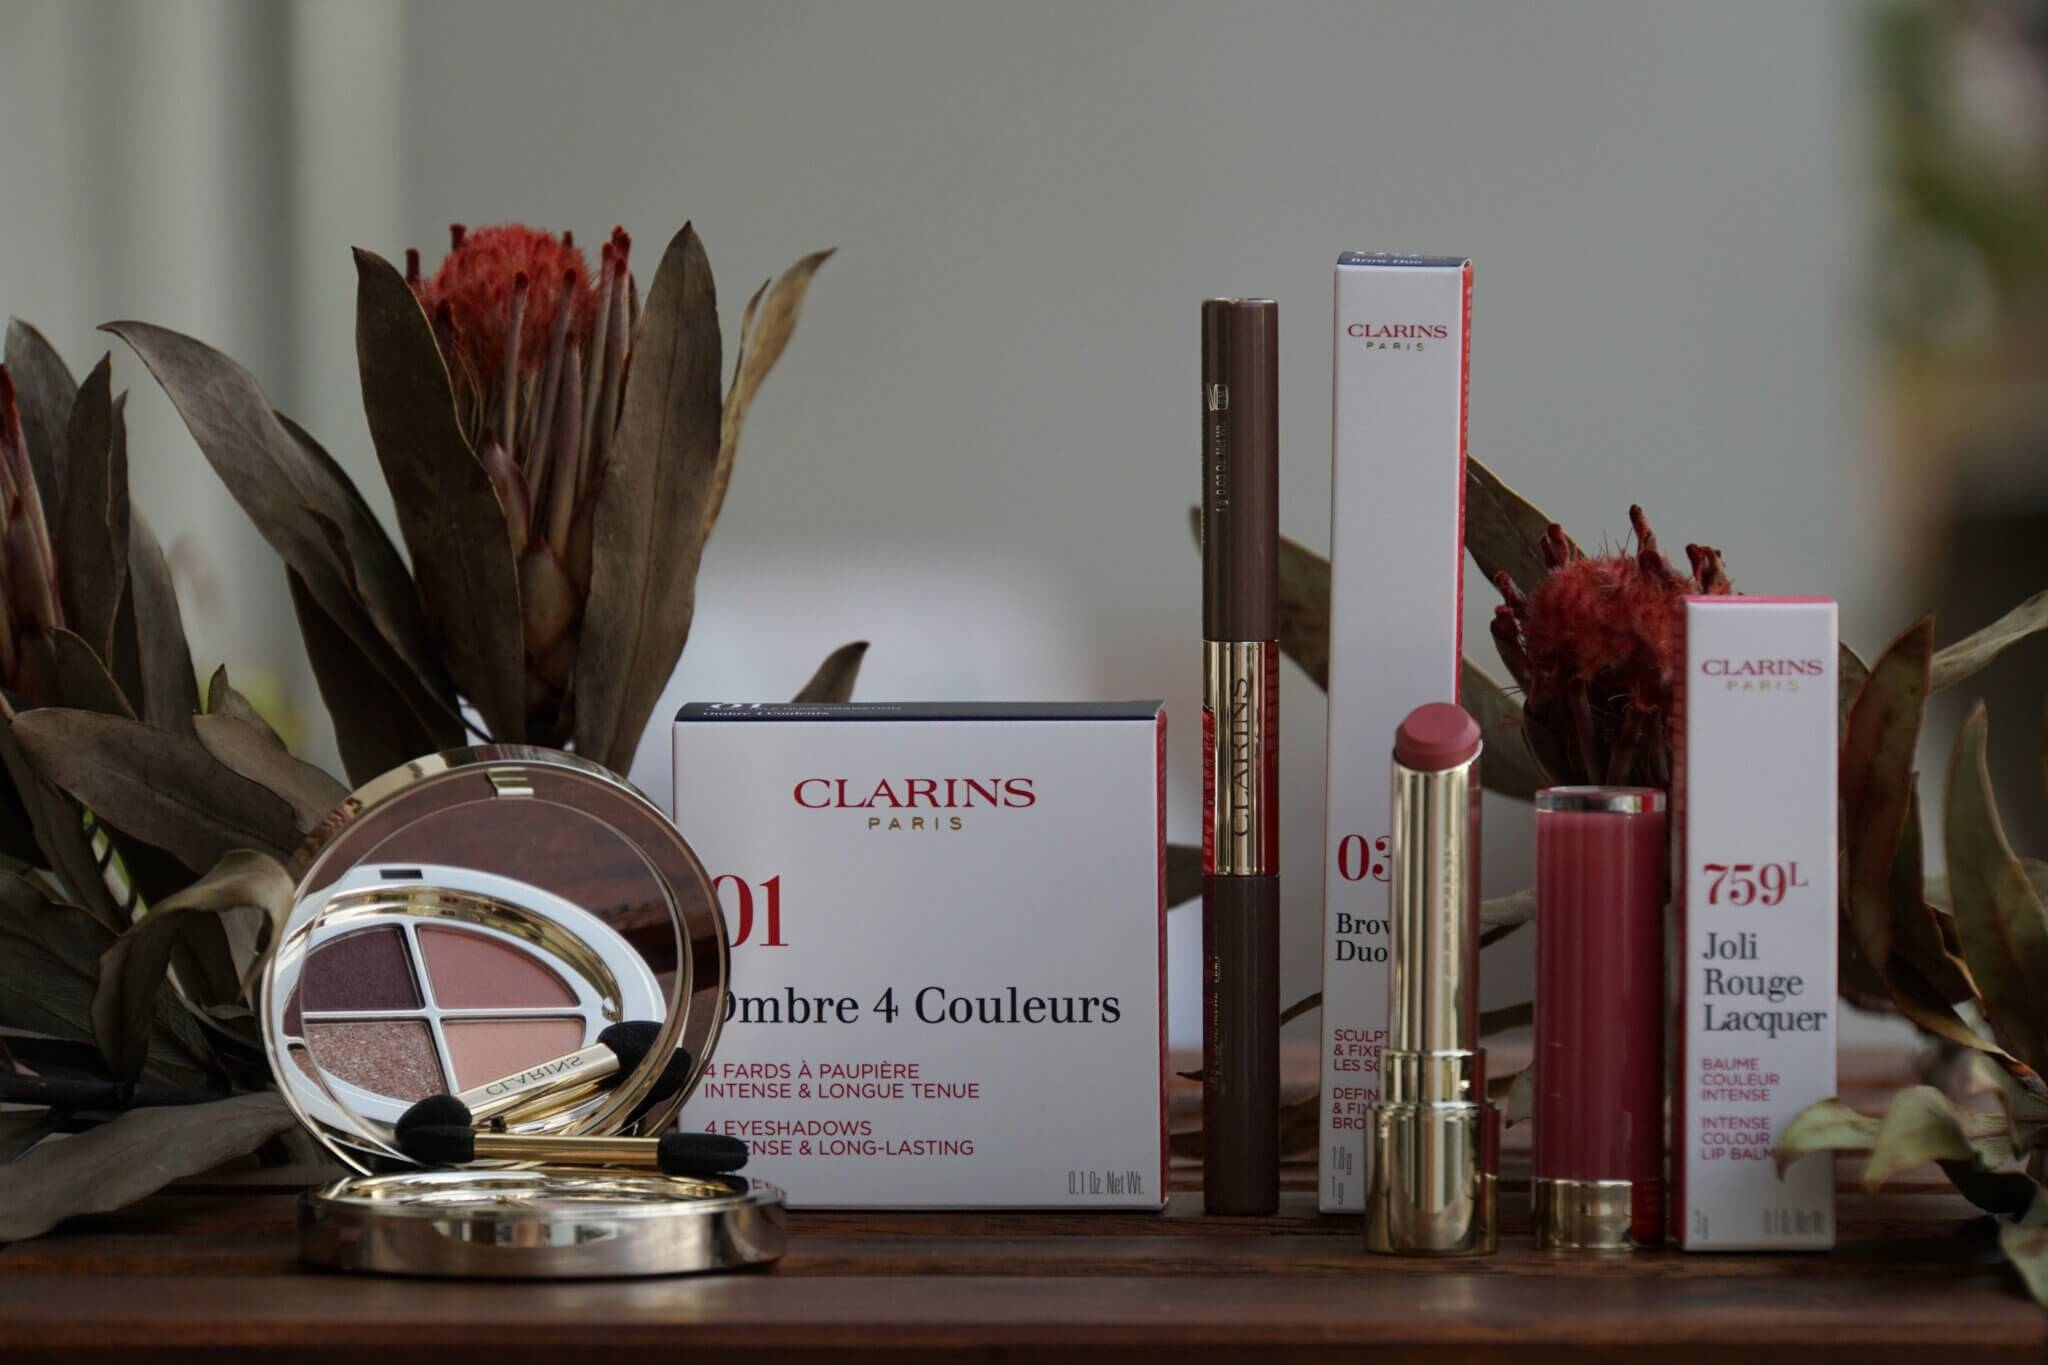 Clarins Easy Looks Ombre 4 Couleurs in 01 Fairy Tale Nude Gradation und Clarins Joli Rouge Lacquer in 759L woodberry und Clarins Brow Duo in 03 cool brown stylerebelles